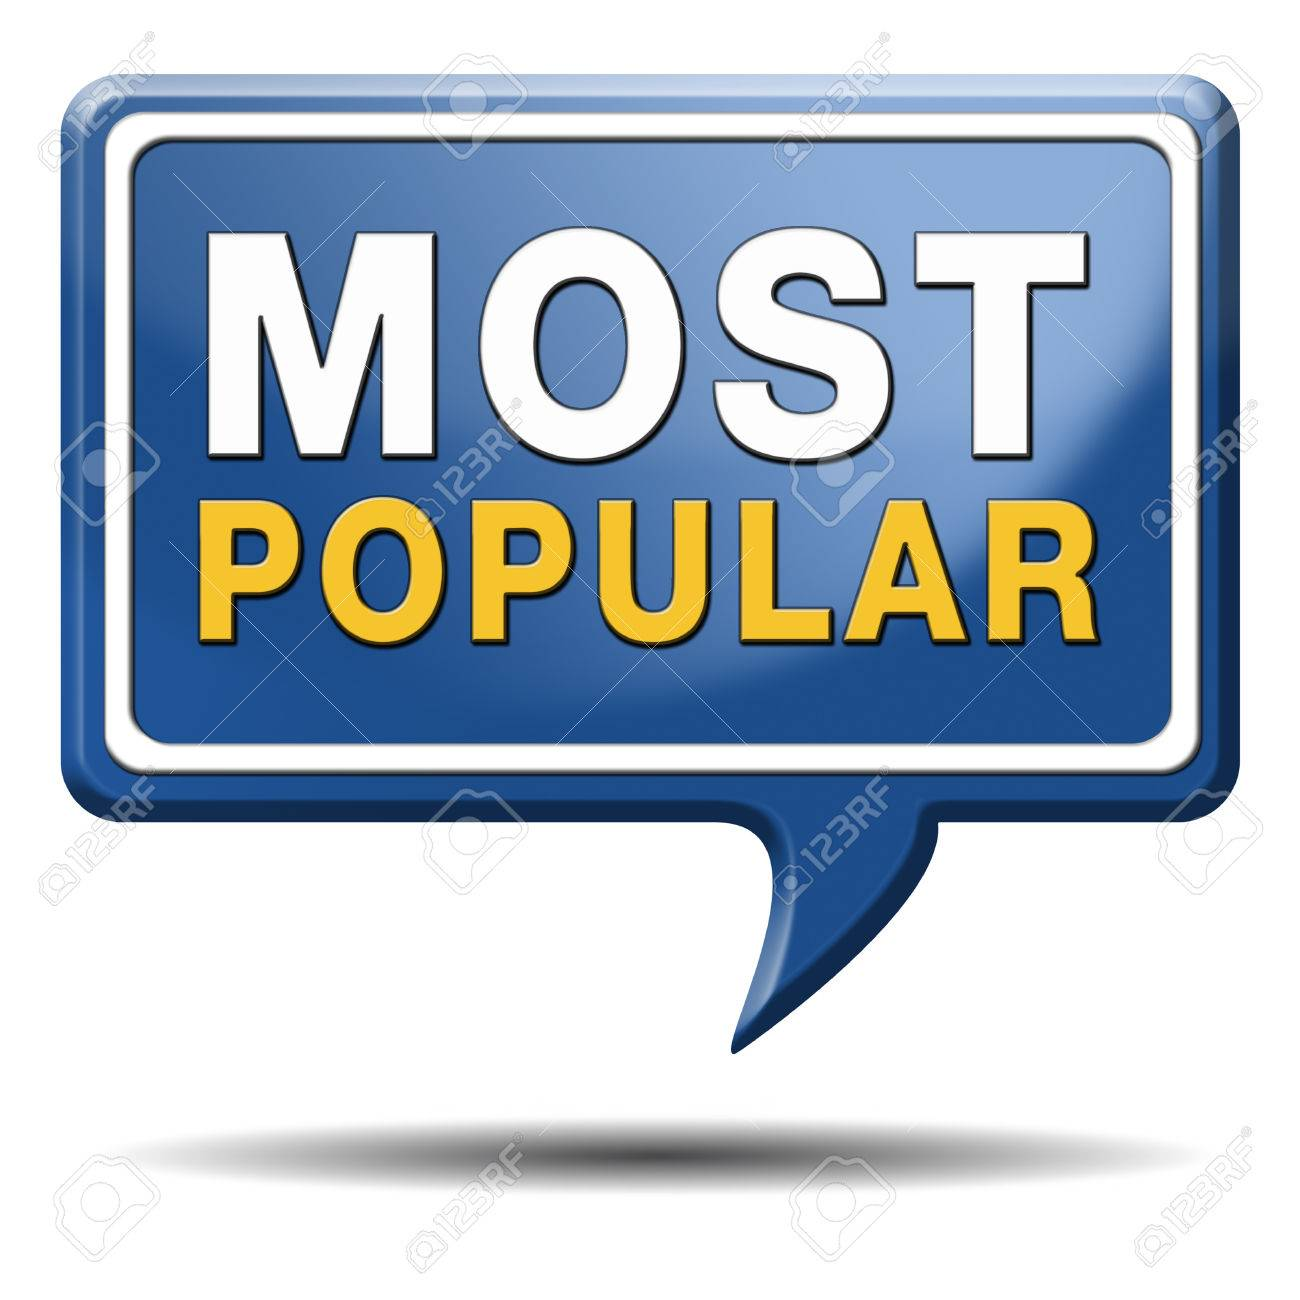 most popular sign popularity label or icon for bestseller or market leader and top product or rating in the charts Stock Photo - 23101196